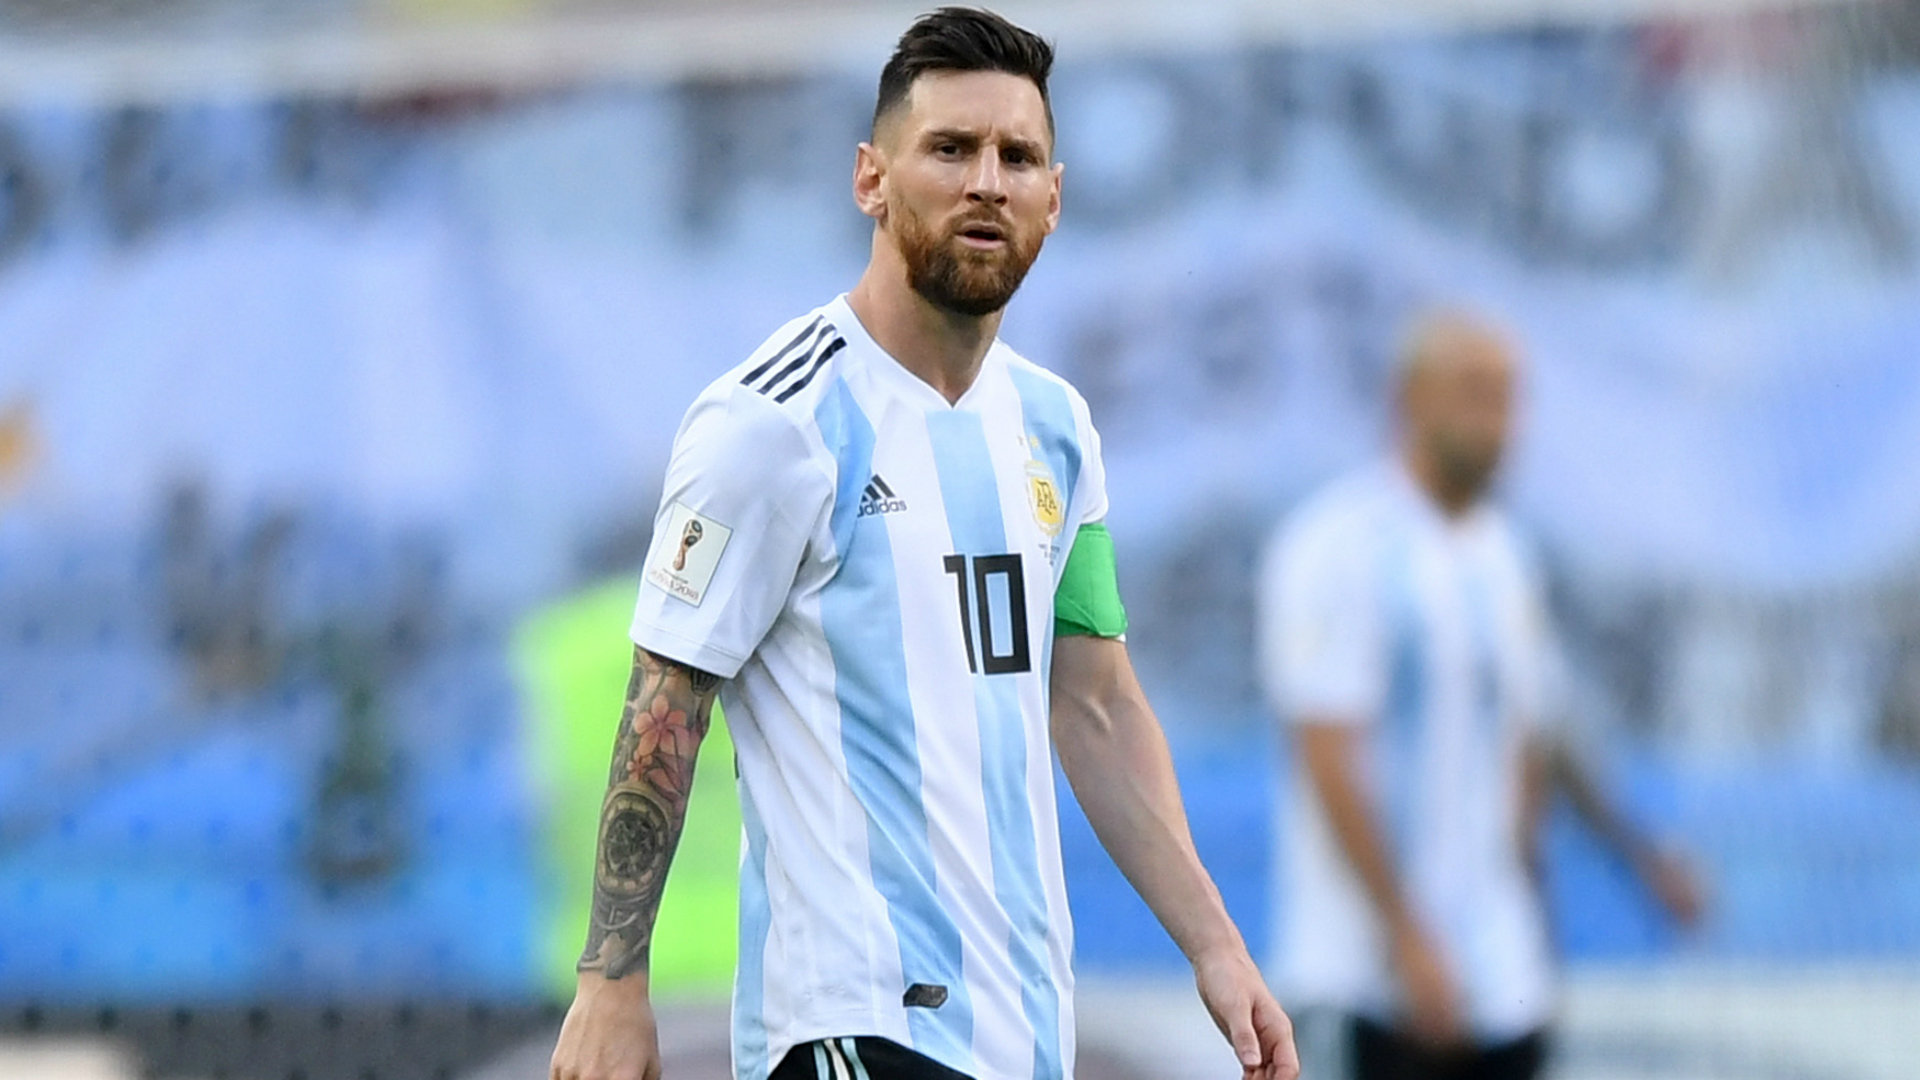 Messi can still win World Cup, insists Sampaoli